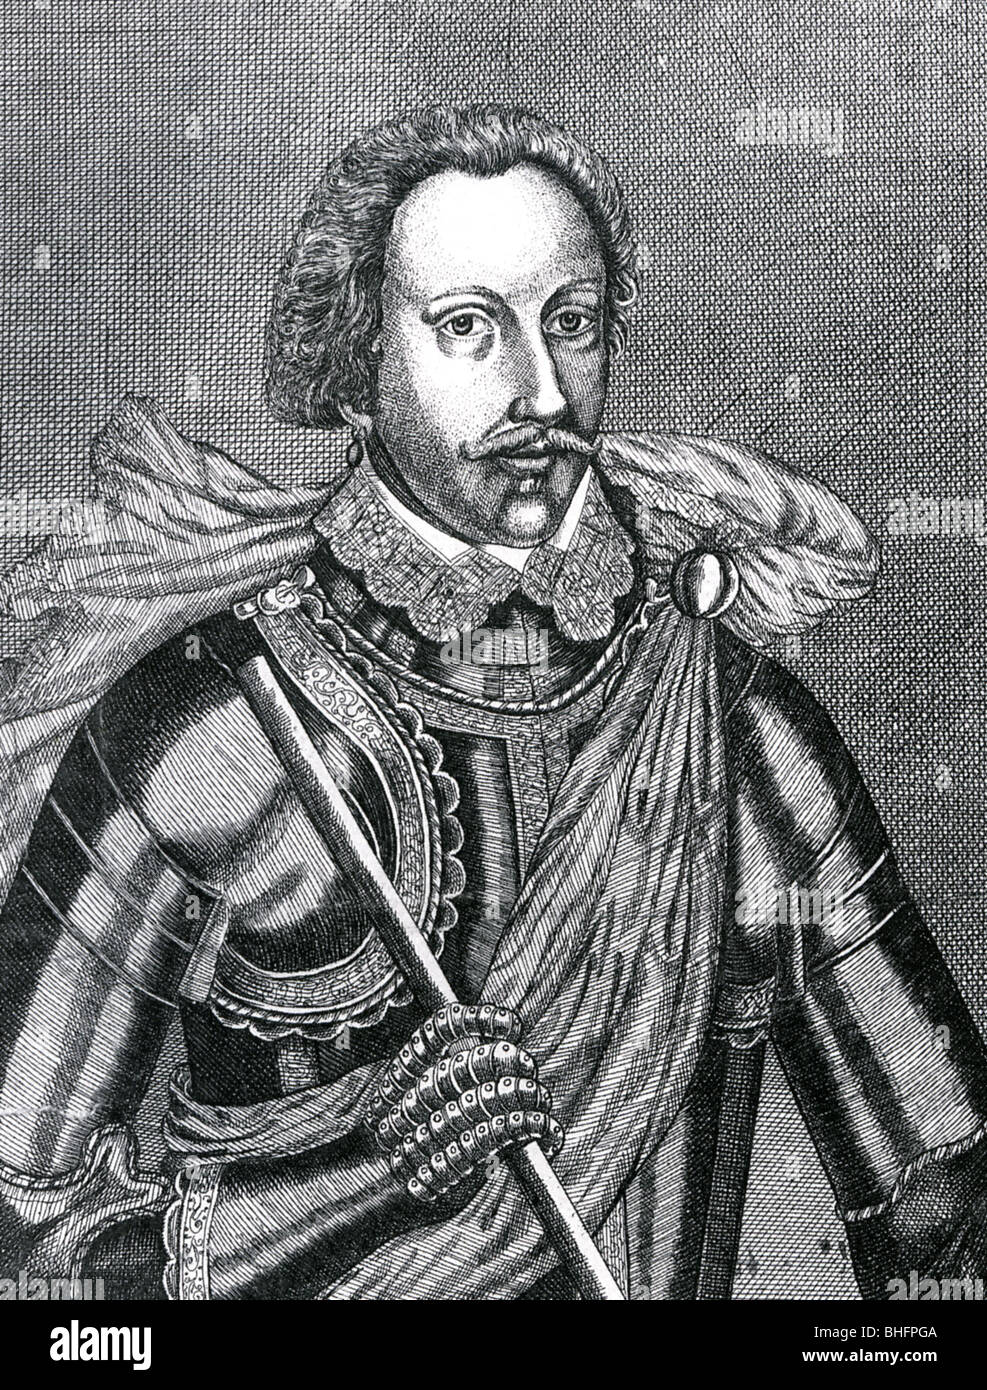 SIR PHILIP SIDNEY  - English soldier, poet and courtier (1554-86) - Stock Image